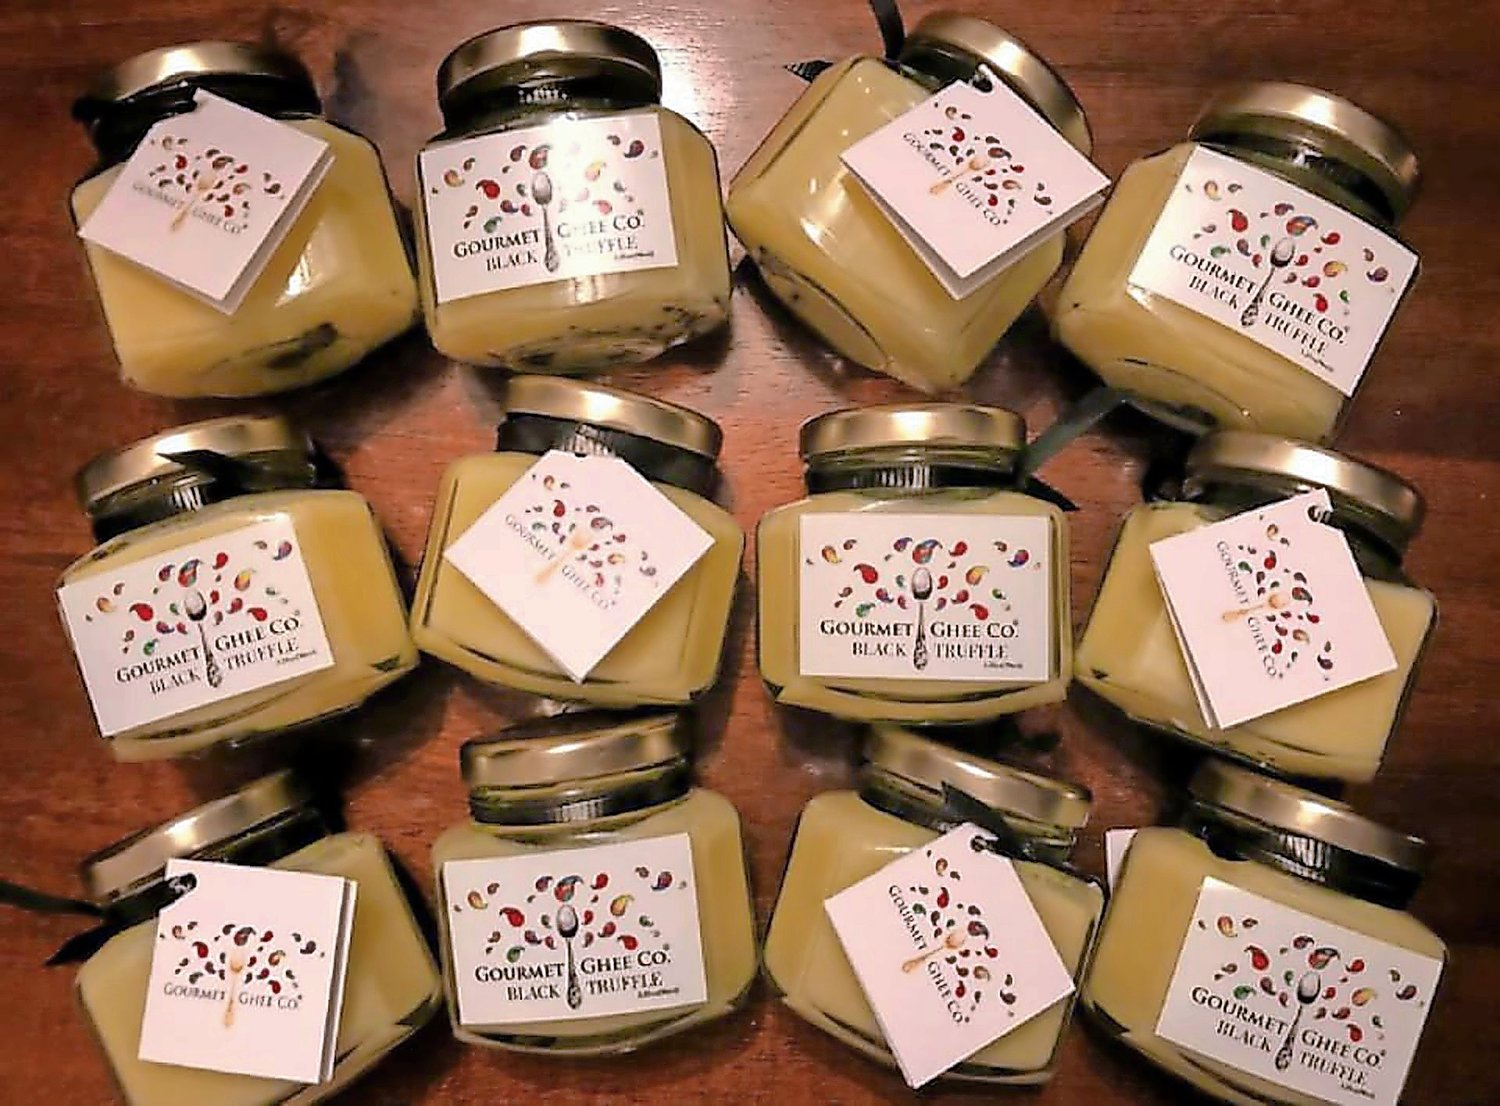 Everyone at the Oscars received a jar of black truffle ghee butter, made by Lynbrook resident Nazia Aibani.